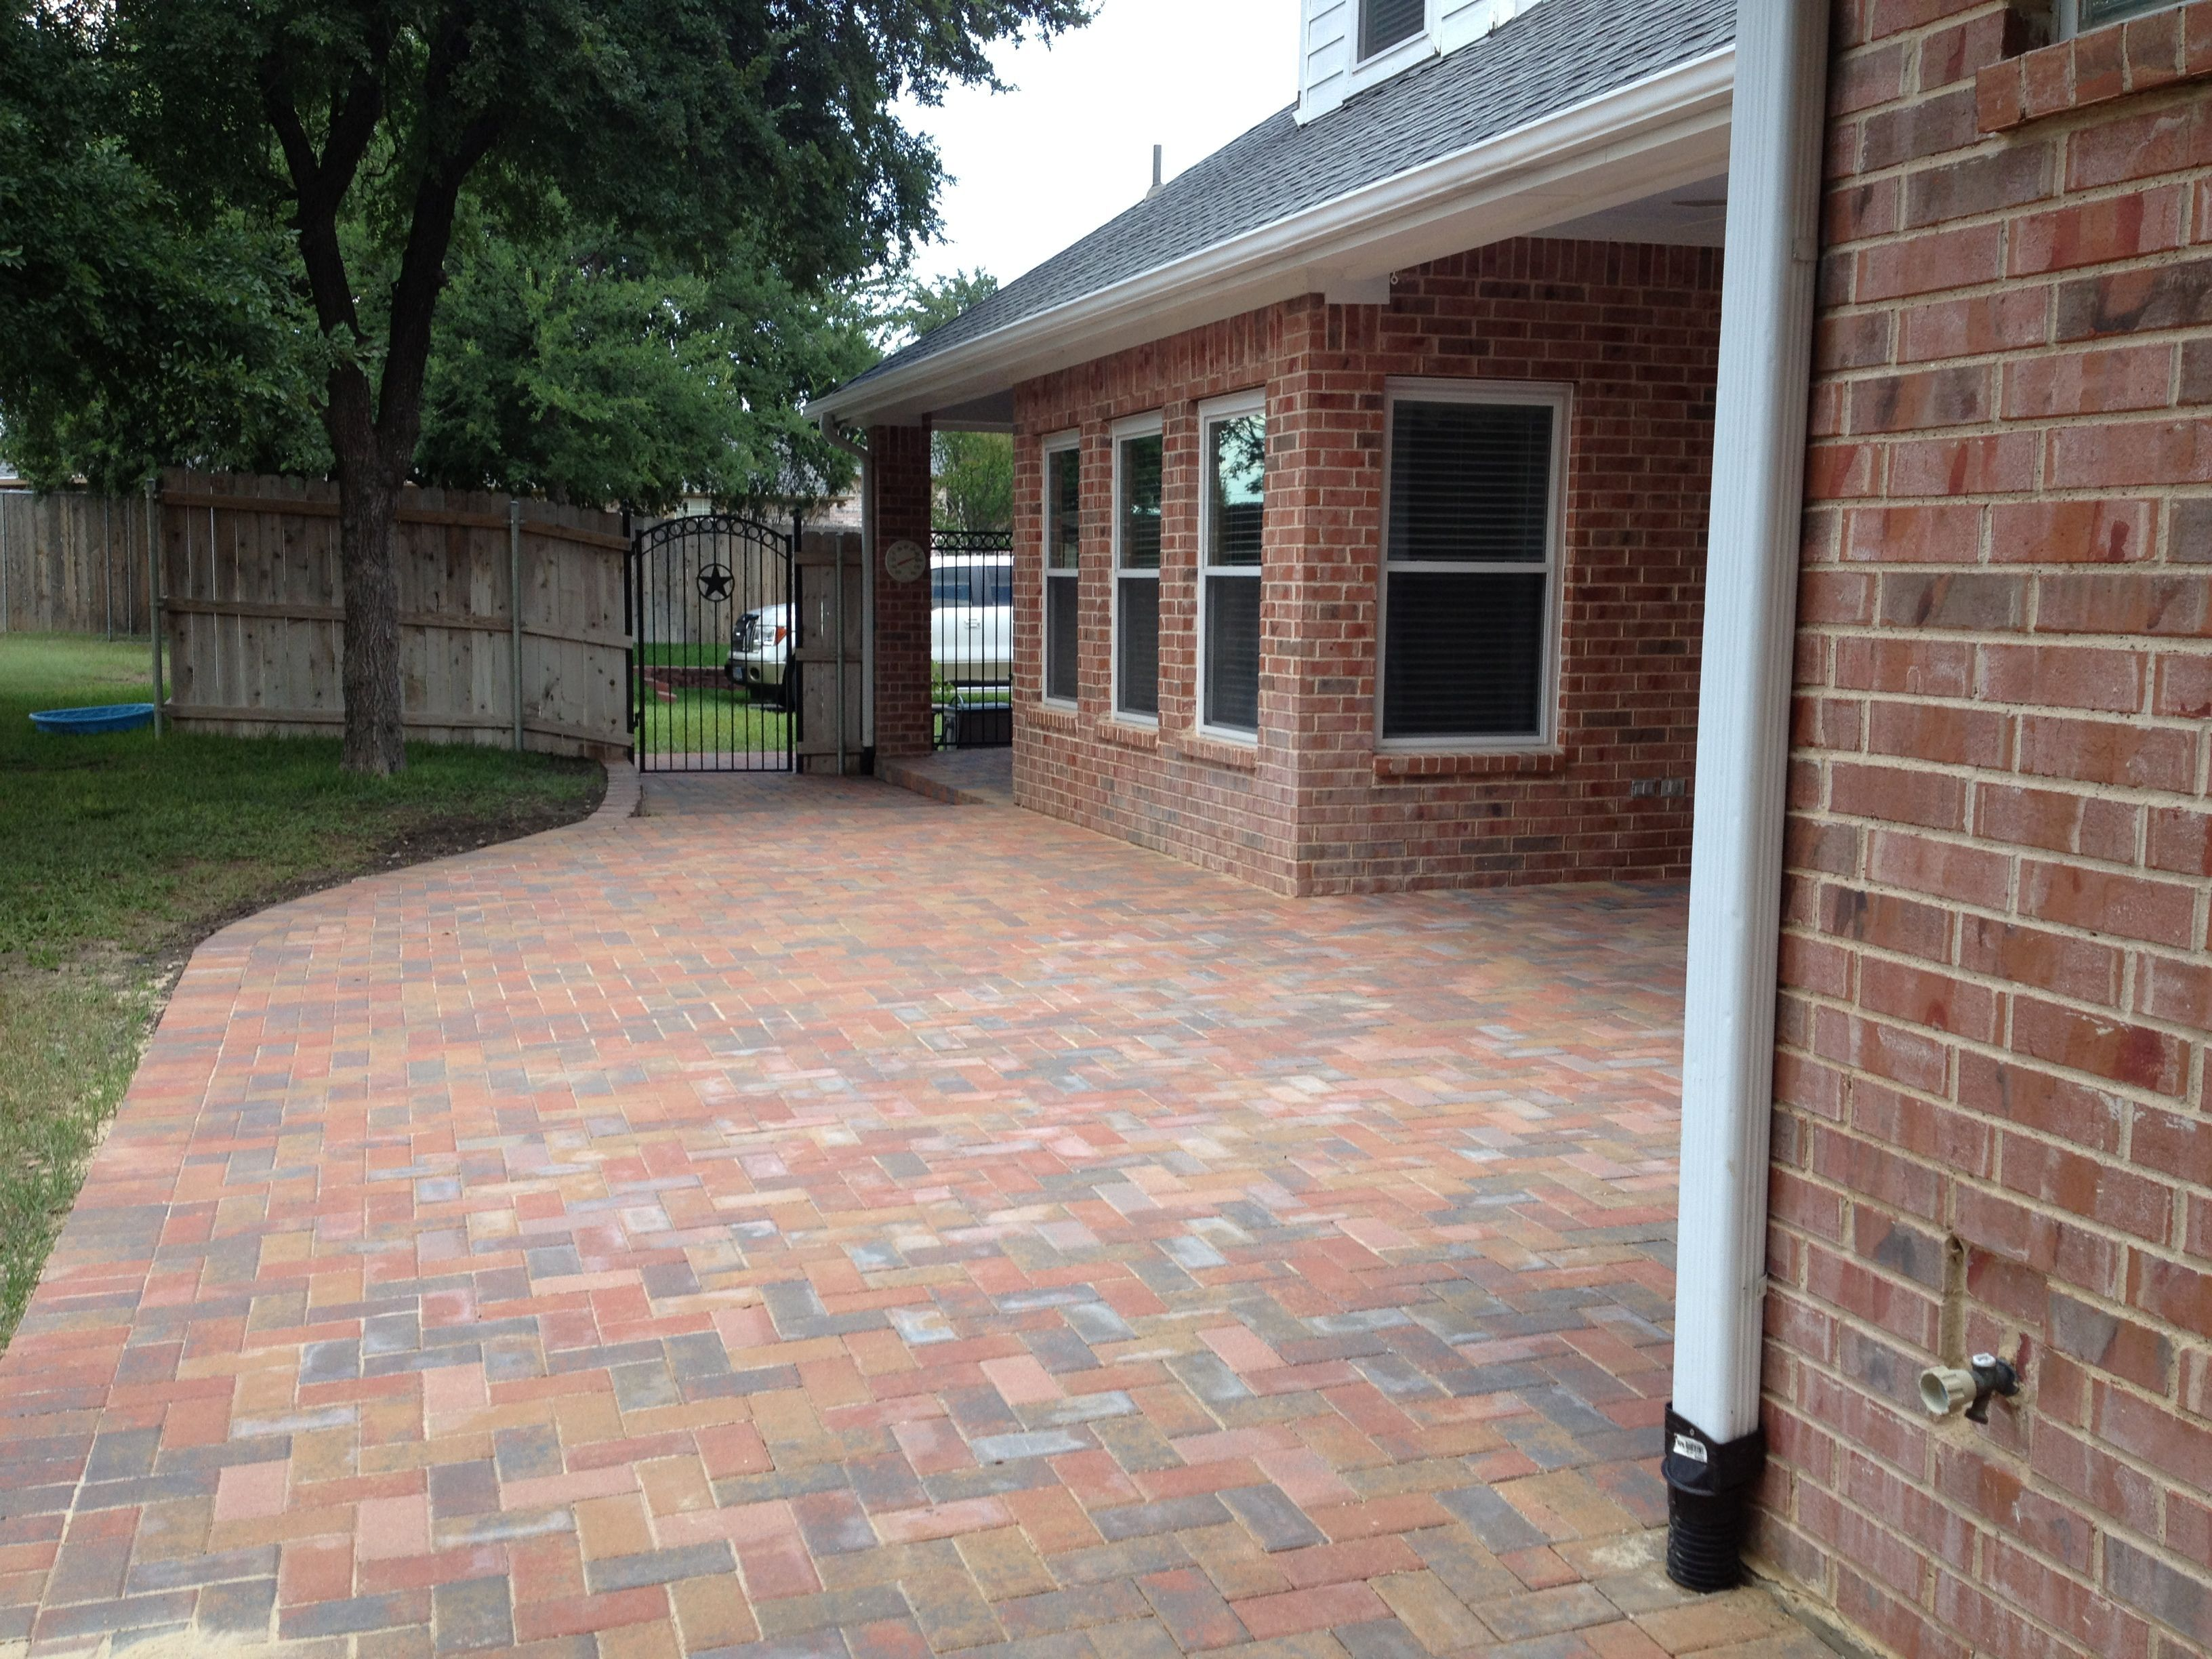 GroundScape a Fort Worth Landscape pany installs a paver